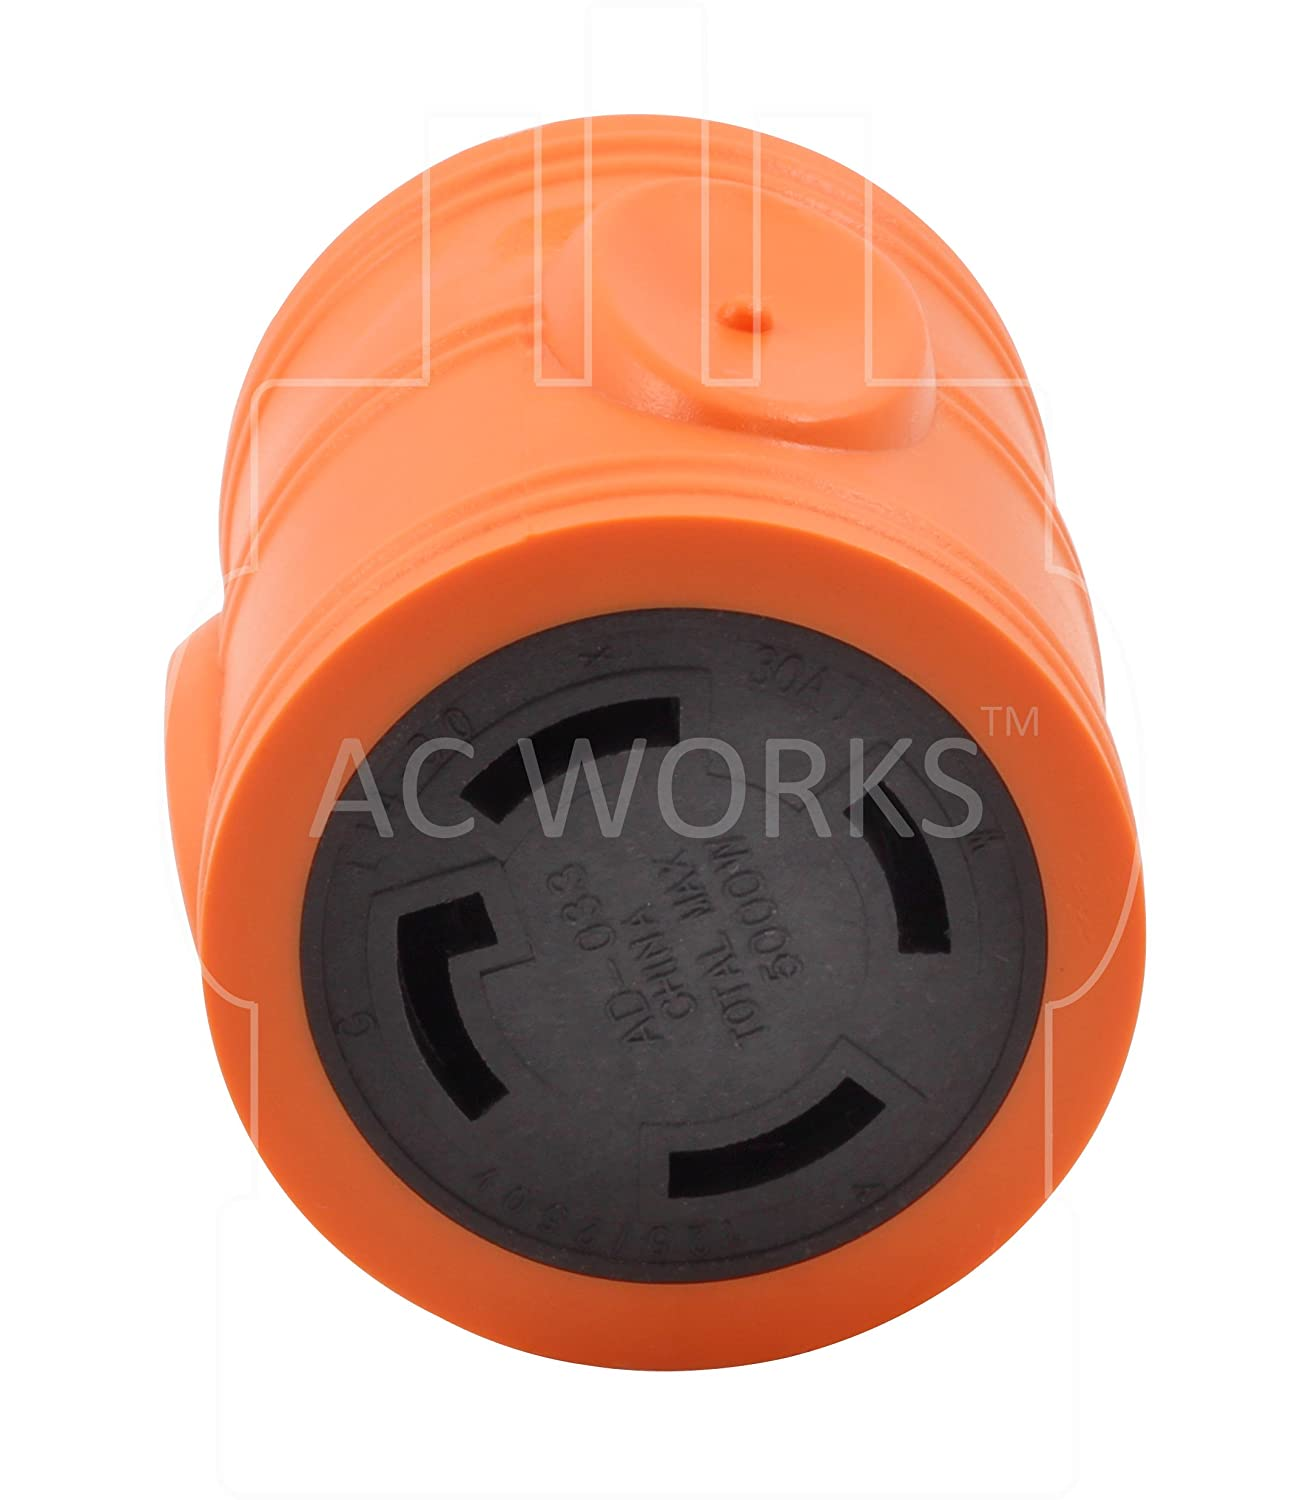 Ac Works Generator To Transfer Switch L14 30 Inlet Box Adapter Reliance Controls Pb30 L1430 Amp Power Cord 15amp Household Compact Tools Home Improvement